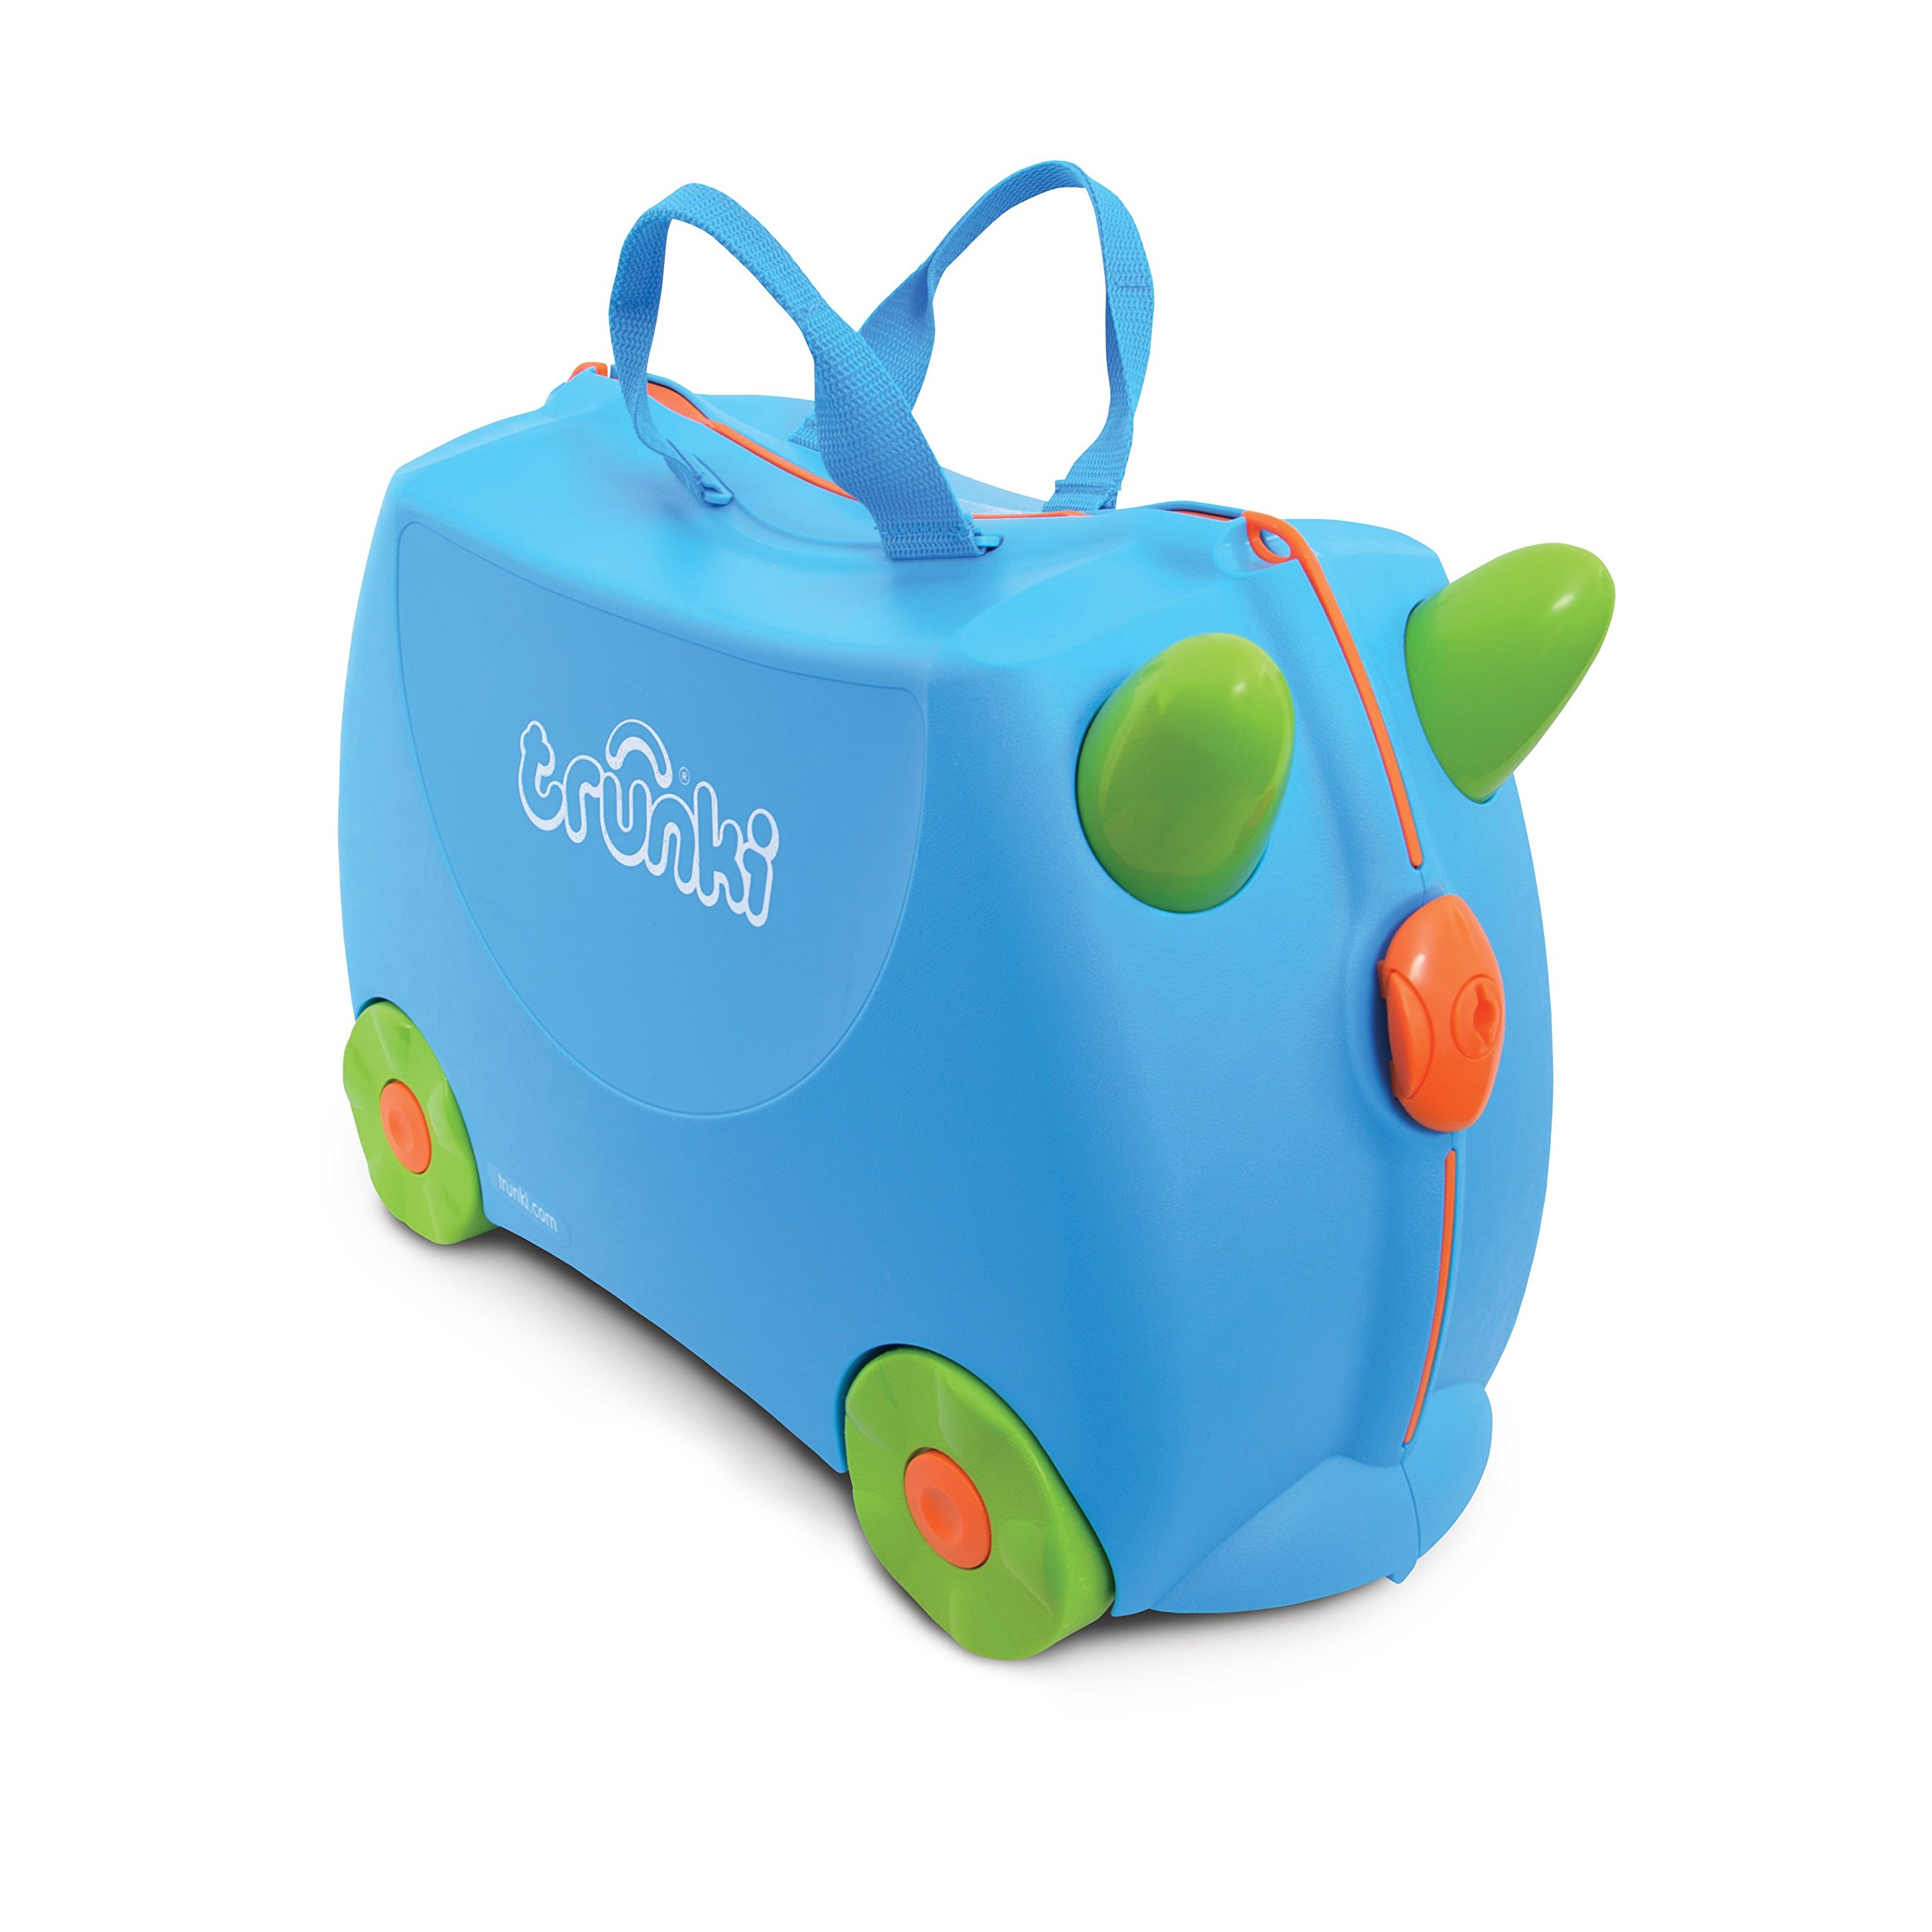 Kids Ride On Suitcase Sit Case Childs Pull Along Luggage Hand Bag ...